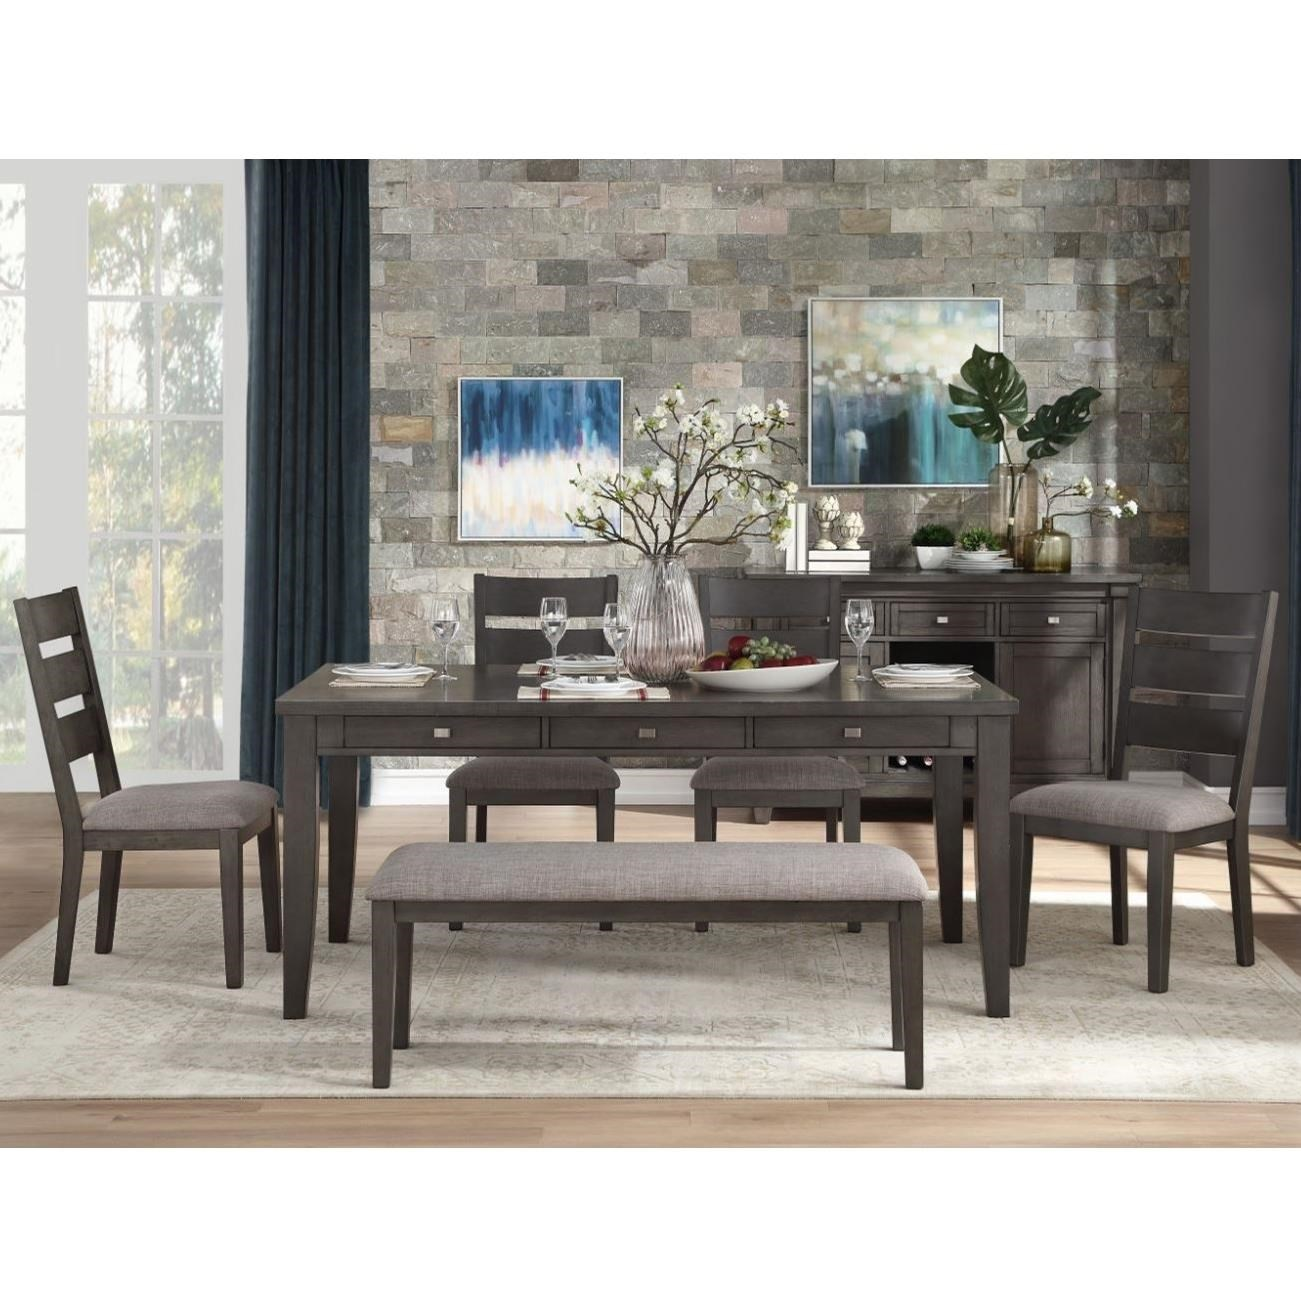 Baresford 6-Piece Table and Chair Set with Bench by Homelegance at Beck's Furniture